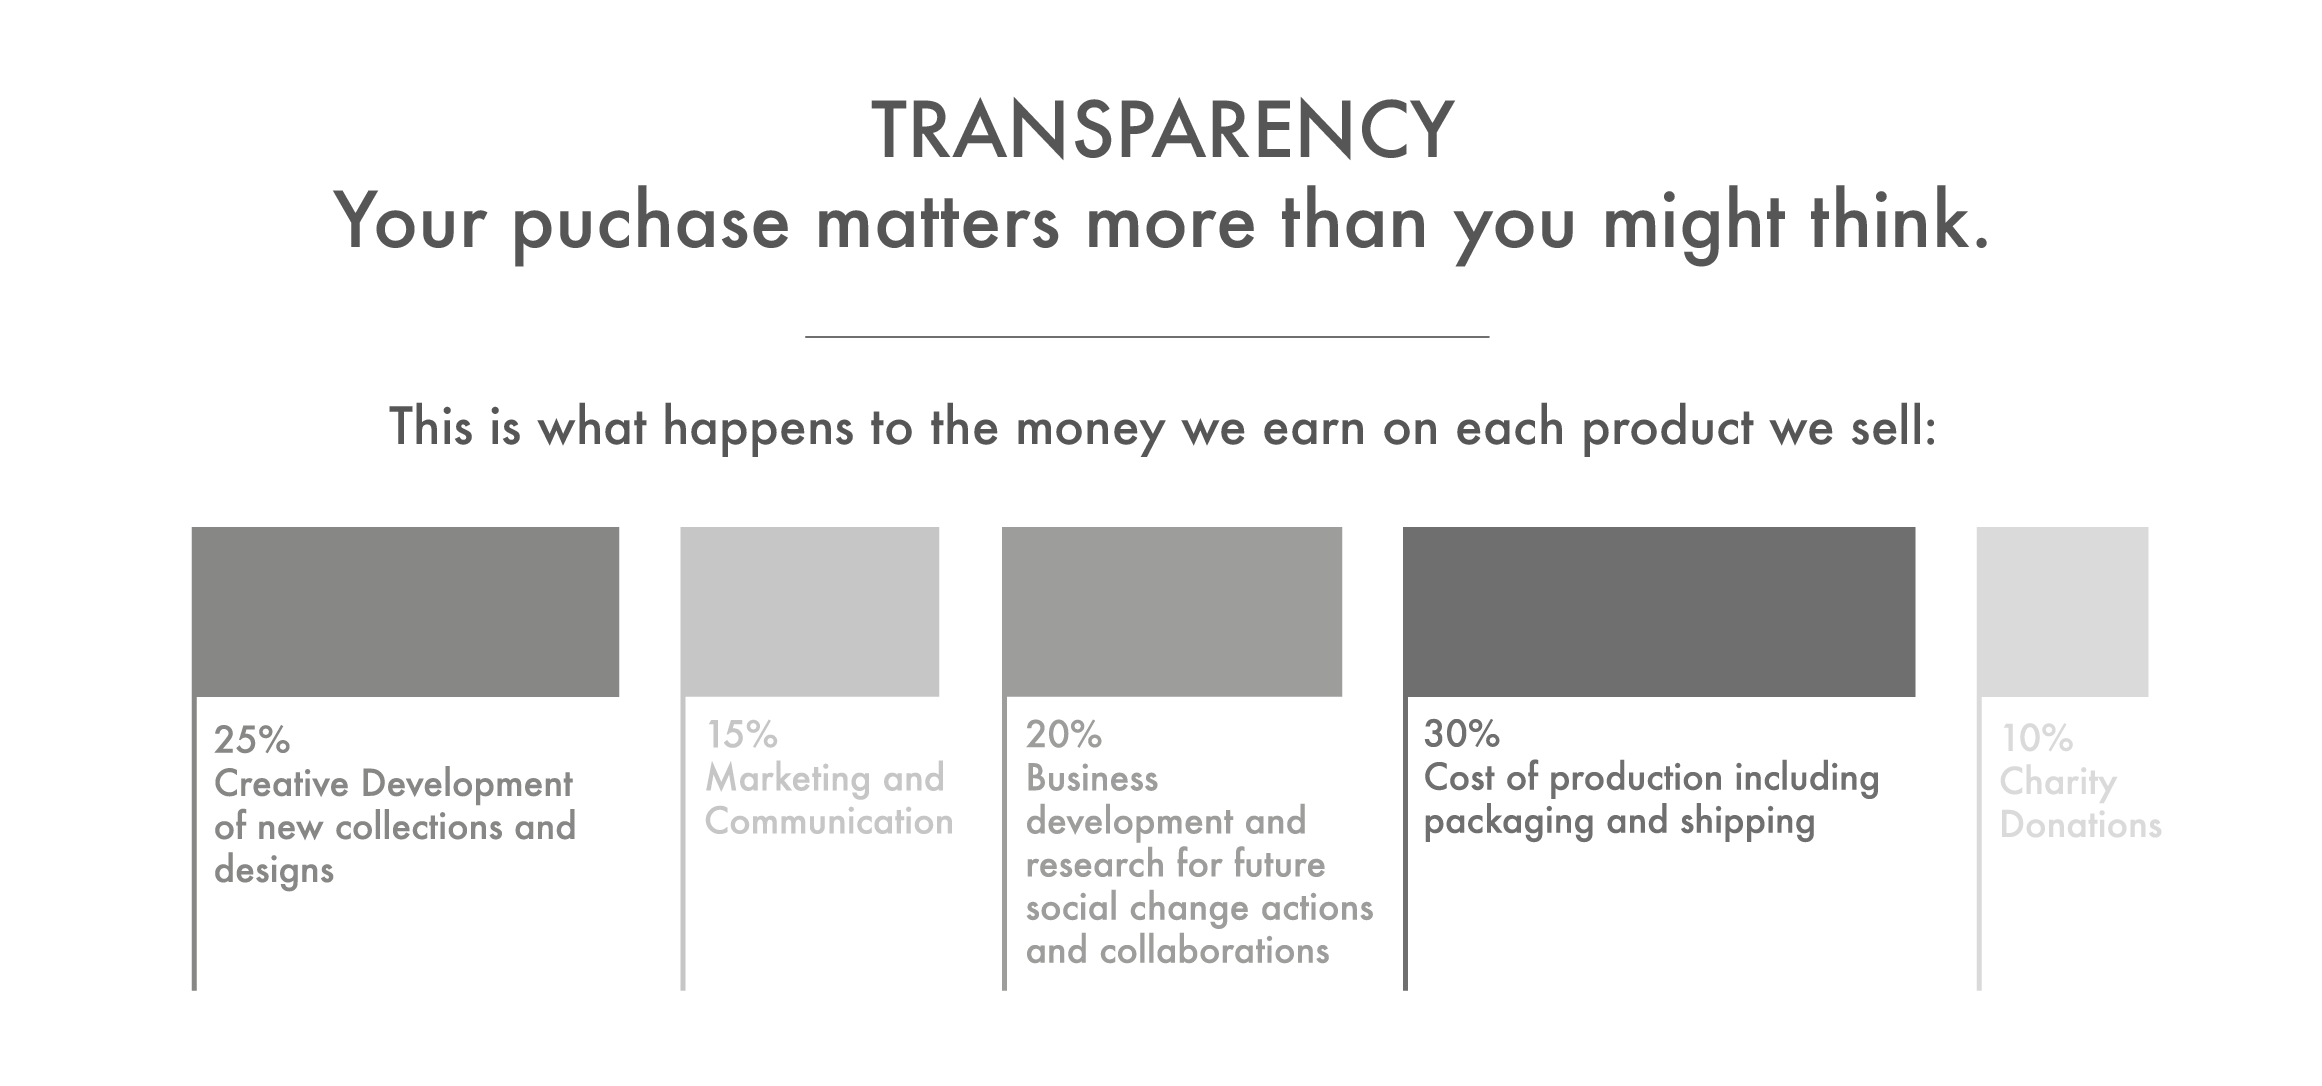 Brand Transparency